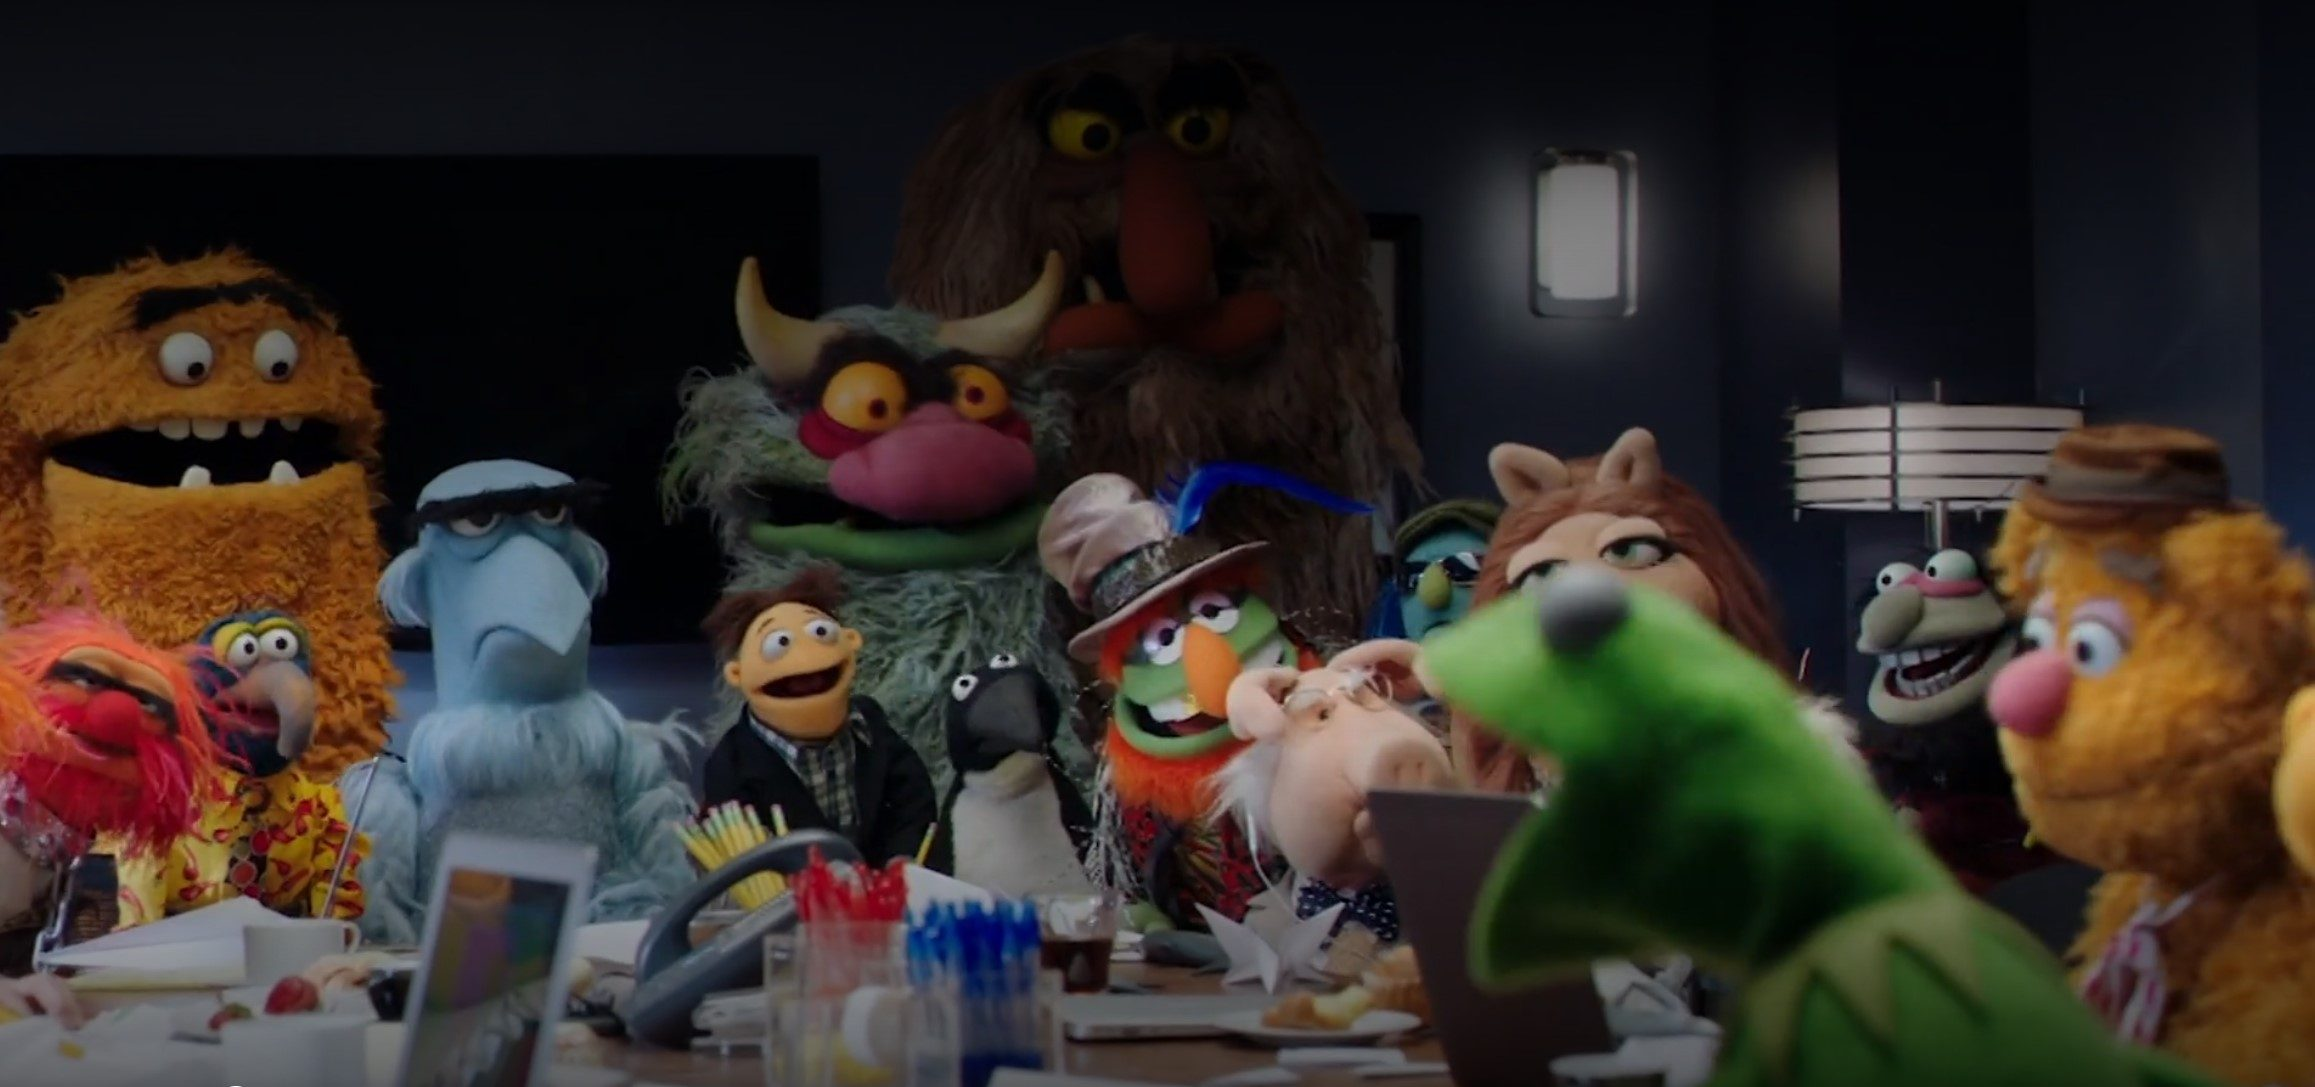 Disney Announces New Series 'Muppets Now' to be Released on Disney+